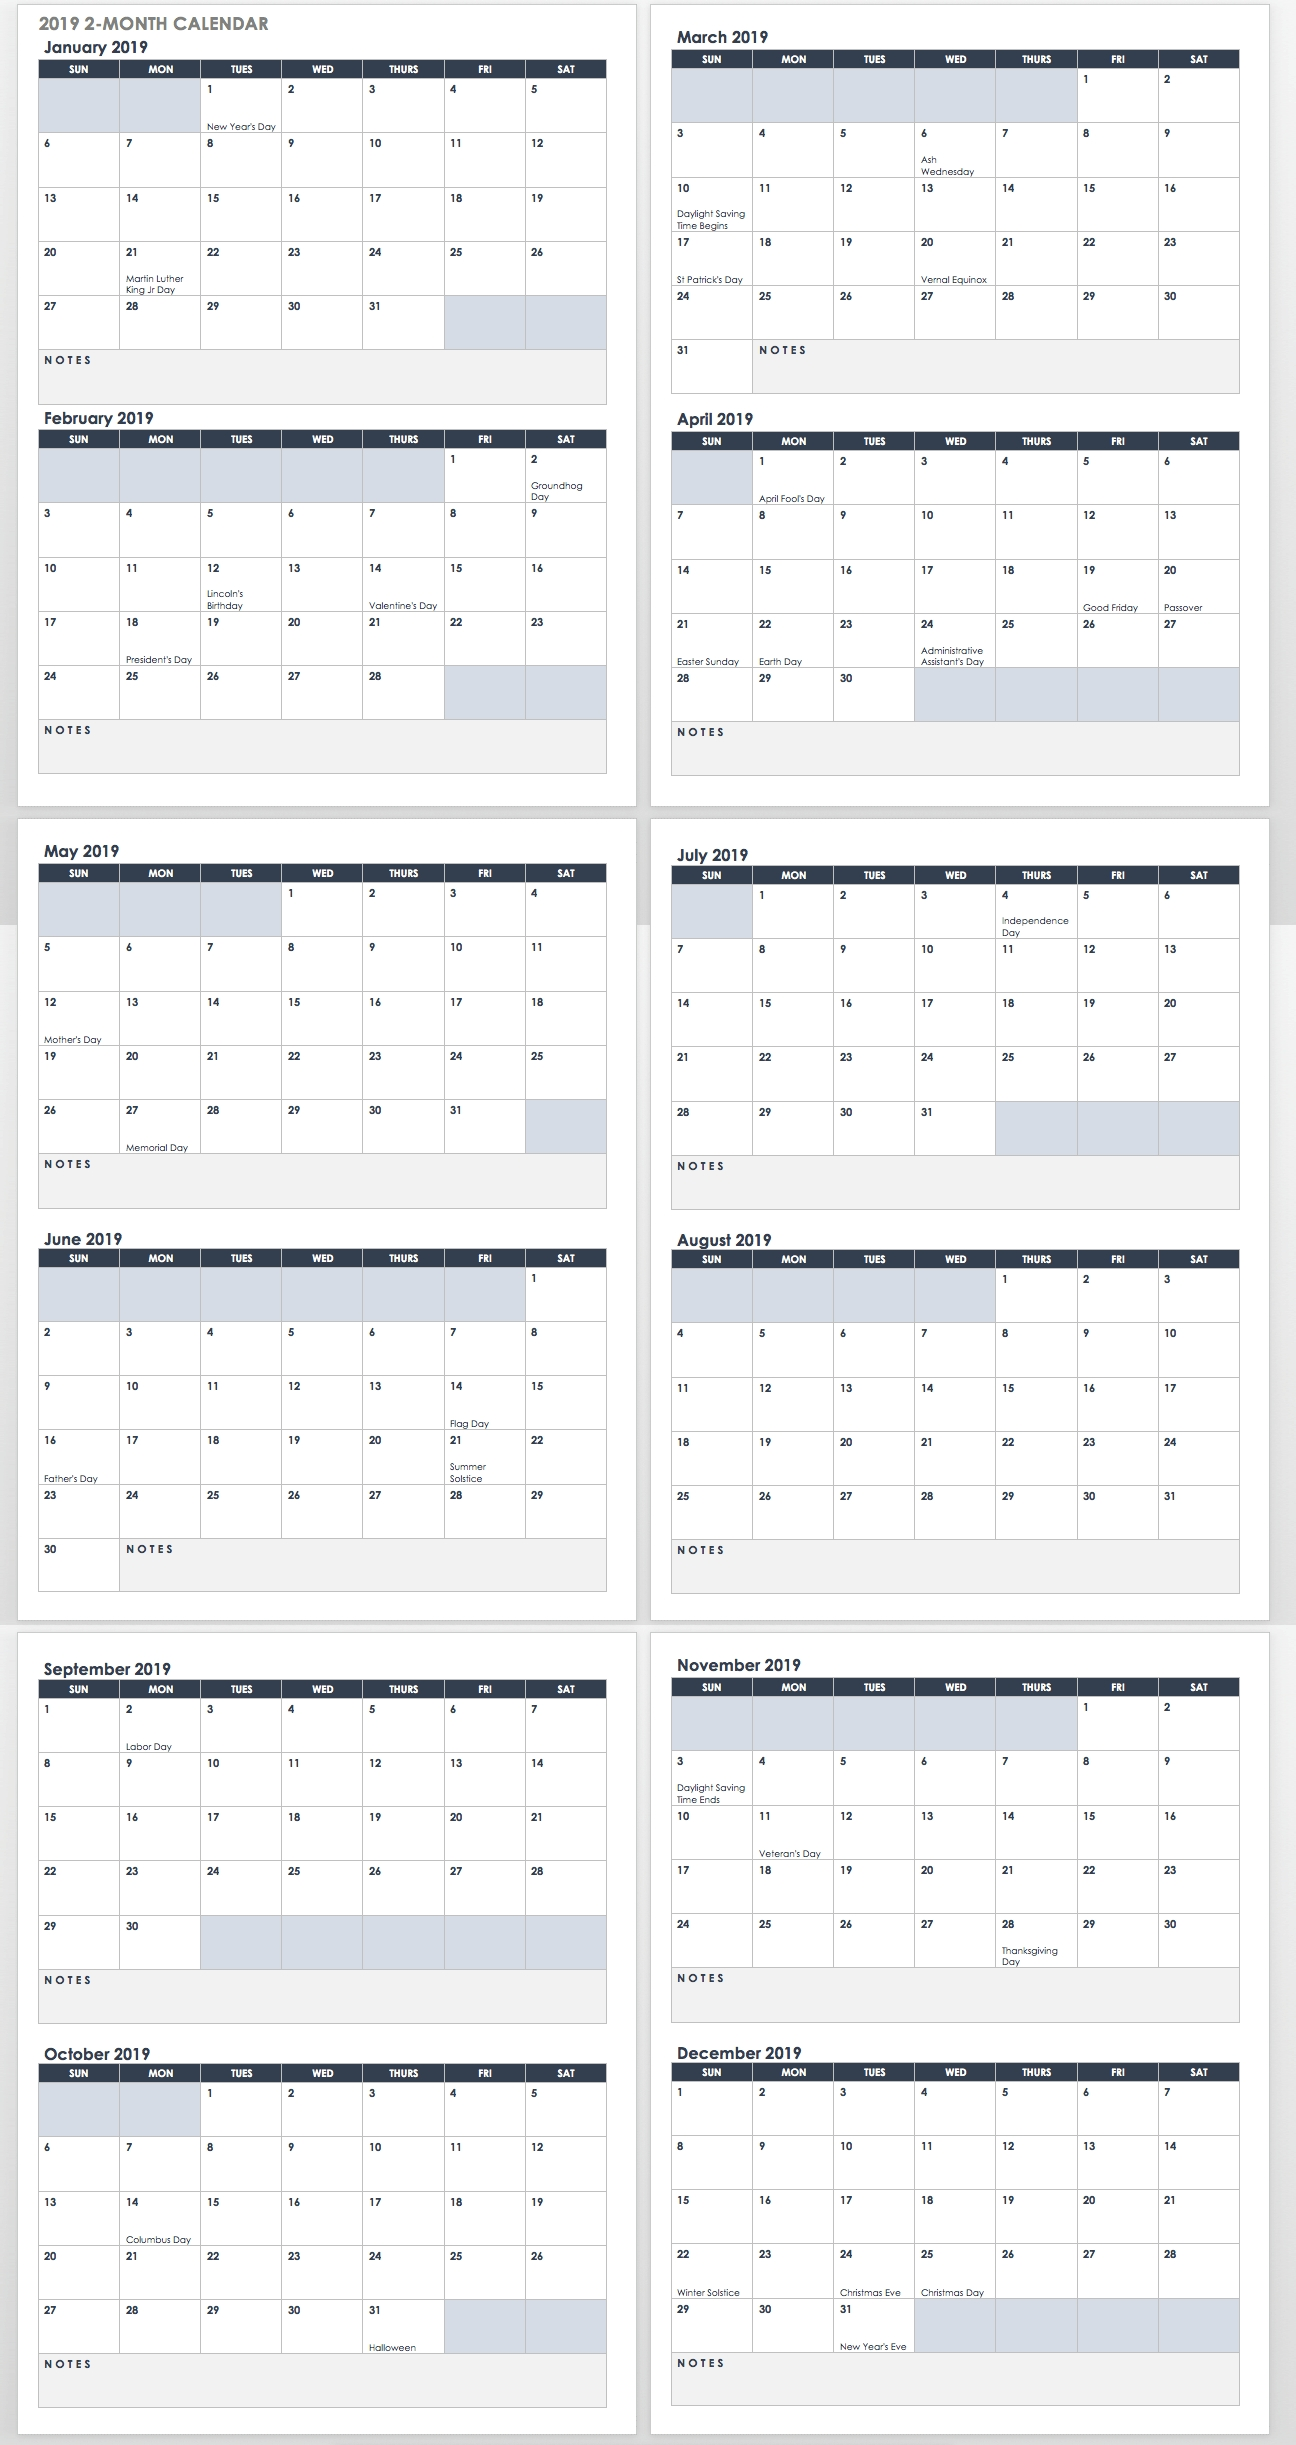 15 Free Monthly Calendar Templates | Smartsheet inside 12 Month Calendar With Room For Notes